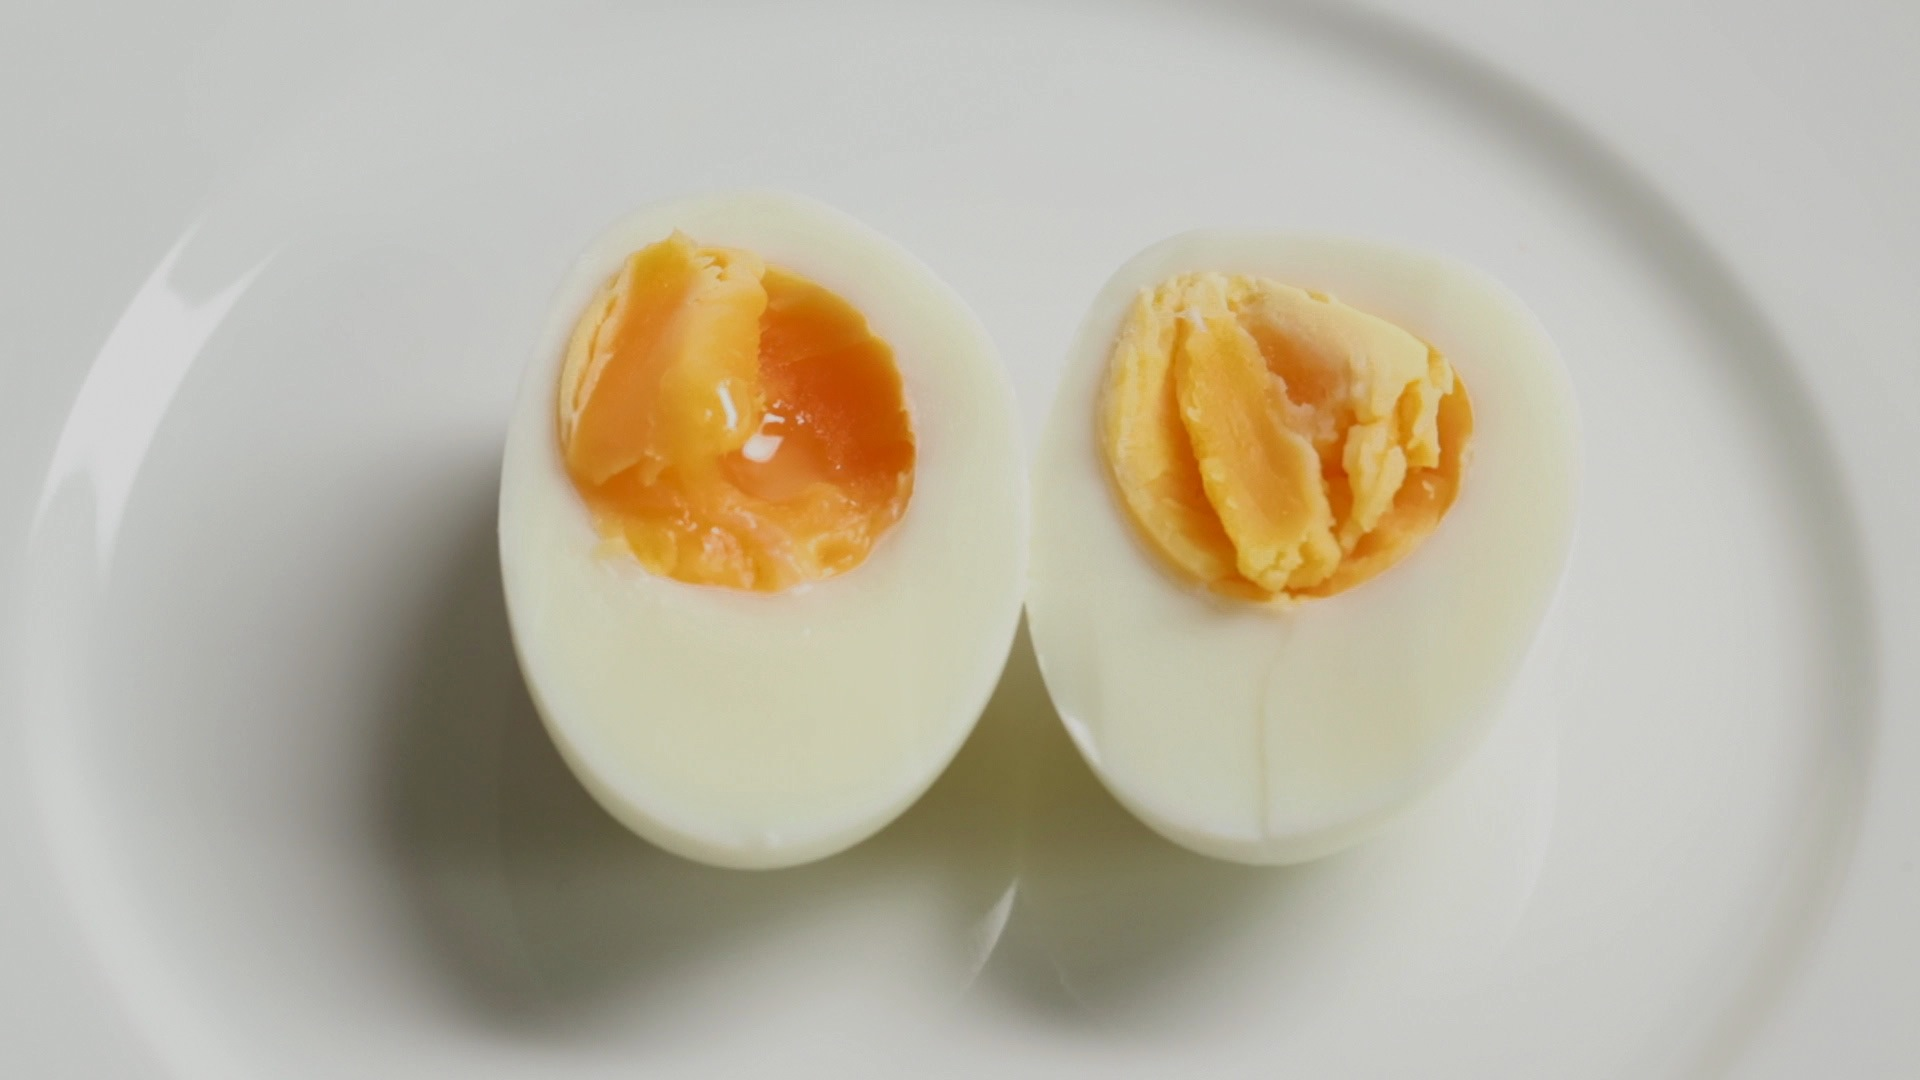 Hard boiled eggs recipes delia online ccuart Image collections